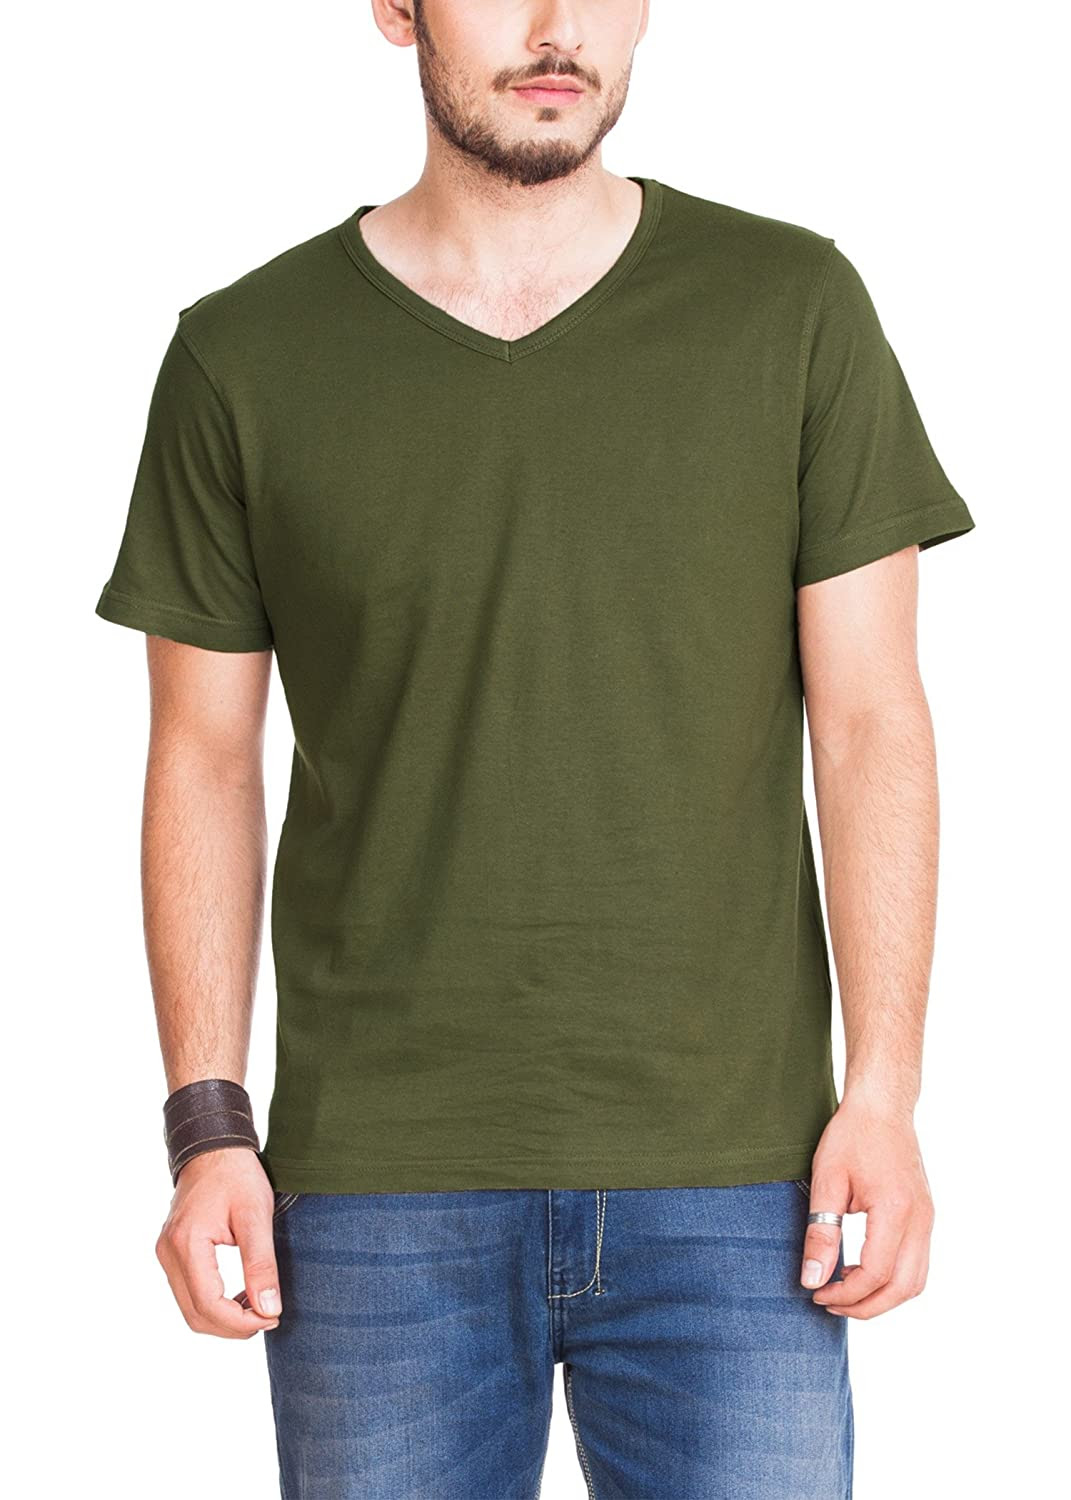 fe23b1a6 Zovi Men's Cotton Forest Green Solid V-neck T-shirt. Rs.157/-